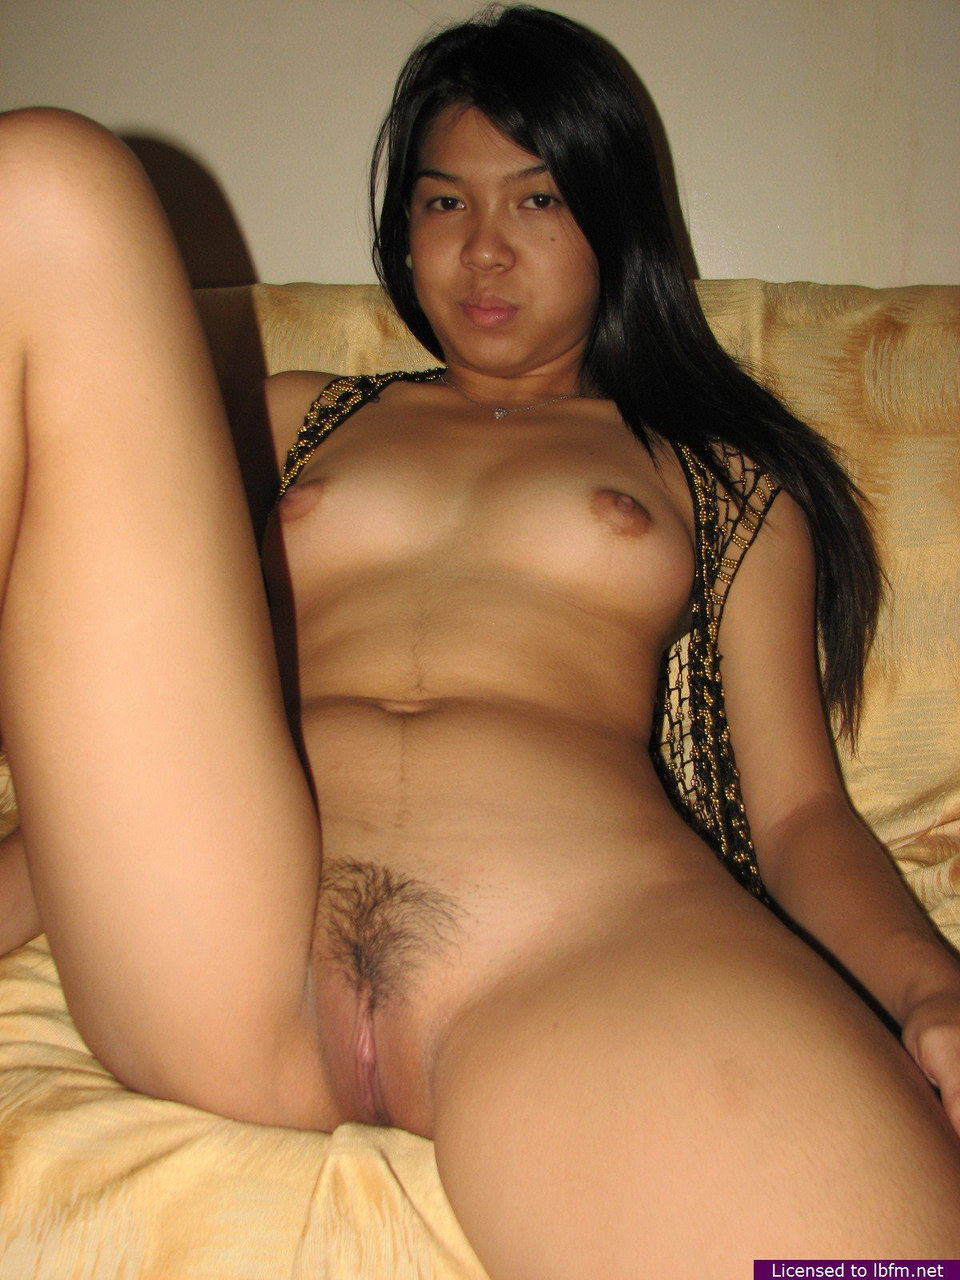 young naked panamanian girl